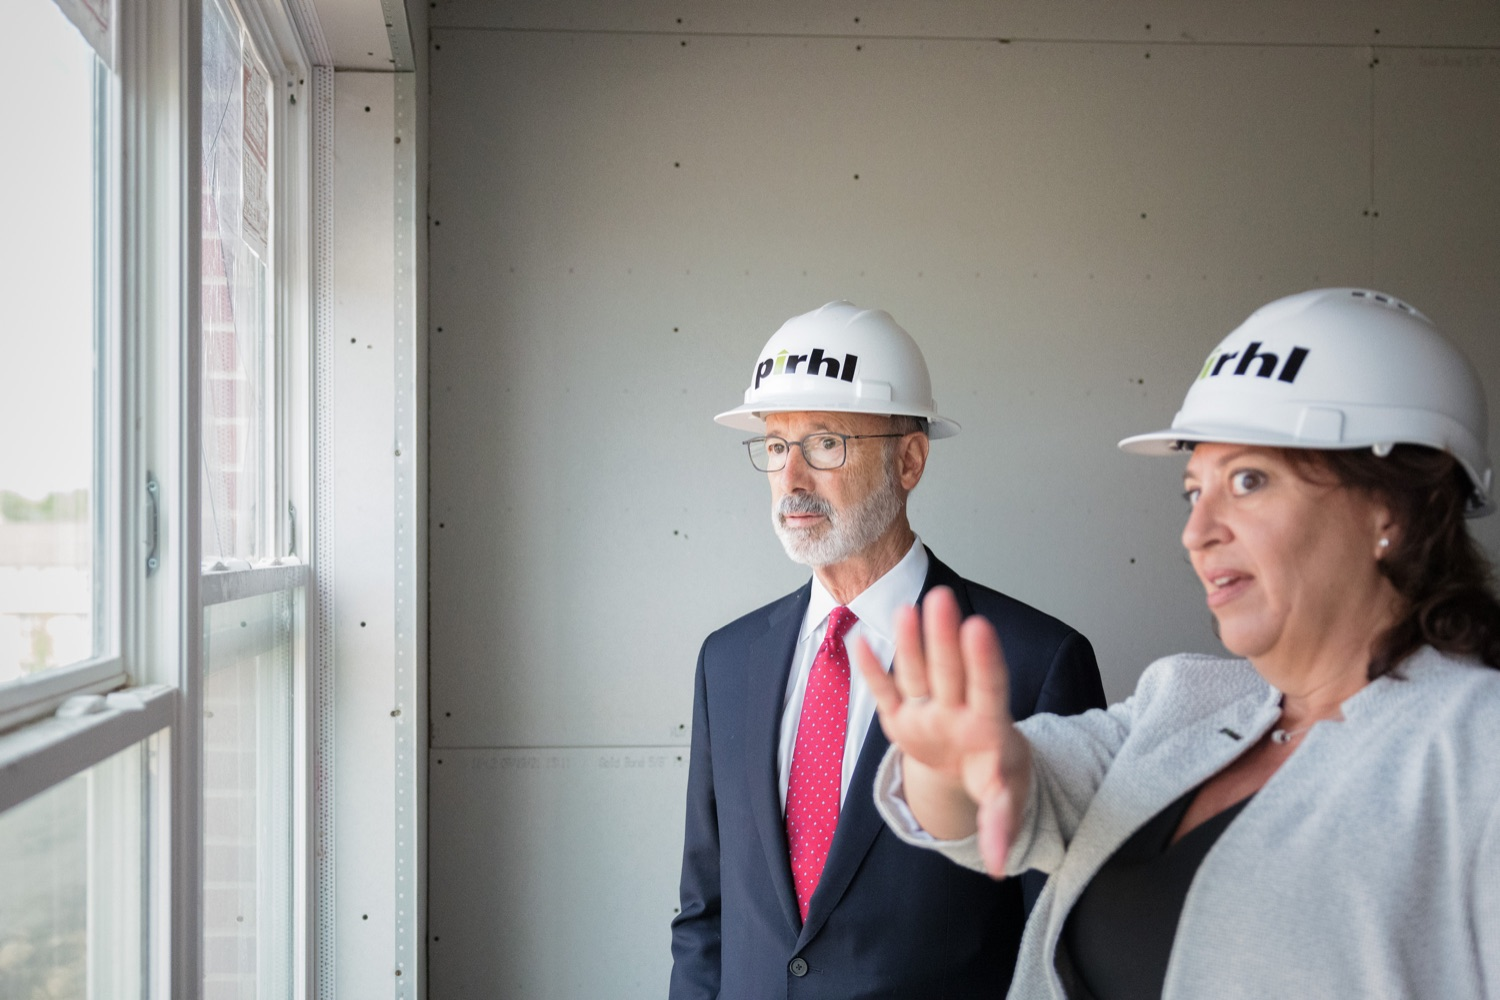 """<a href=""""https://filesource.wostreaming.net/commonwealthofpa/photo/20125_gov_economicDevelopment_dz_008.jpg"""" target=""""_blank"""">⇣Download Photo<br></a>Governor Tom Wolf touring the site of the Mill at Easton. Governor Tom Wolf today visited the City of Easton to highlight millions of dollars in state investments in several economic development projects that are revitalizing formerly vacant and blighted properties.  Easton, PA   October 8, 2021."""